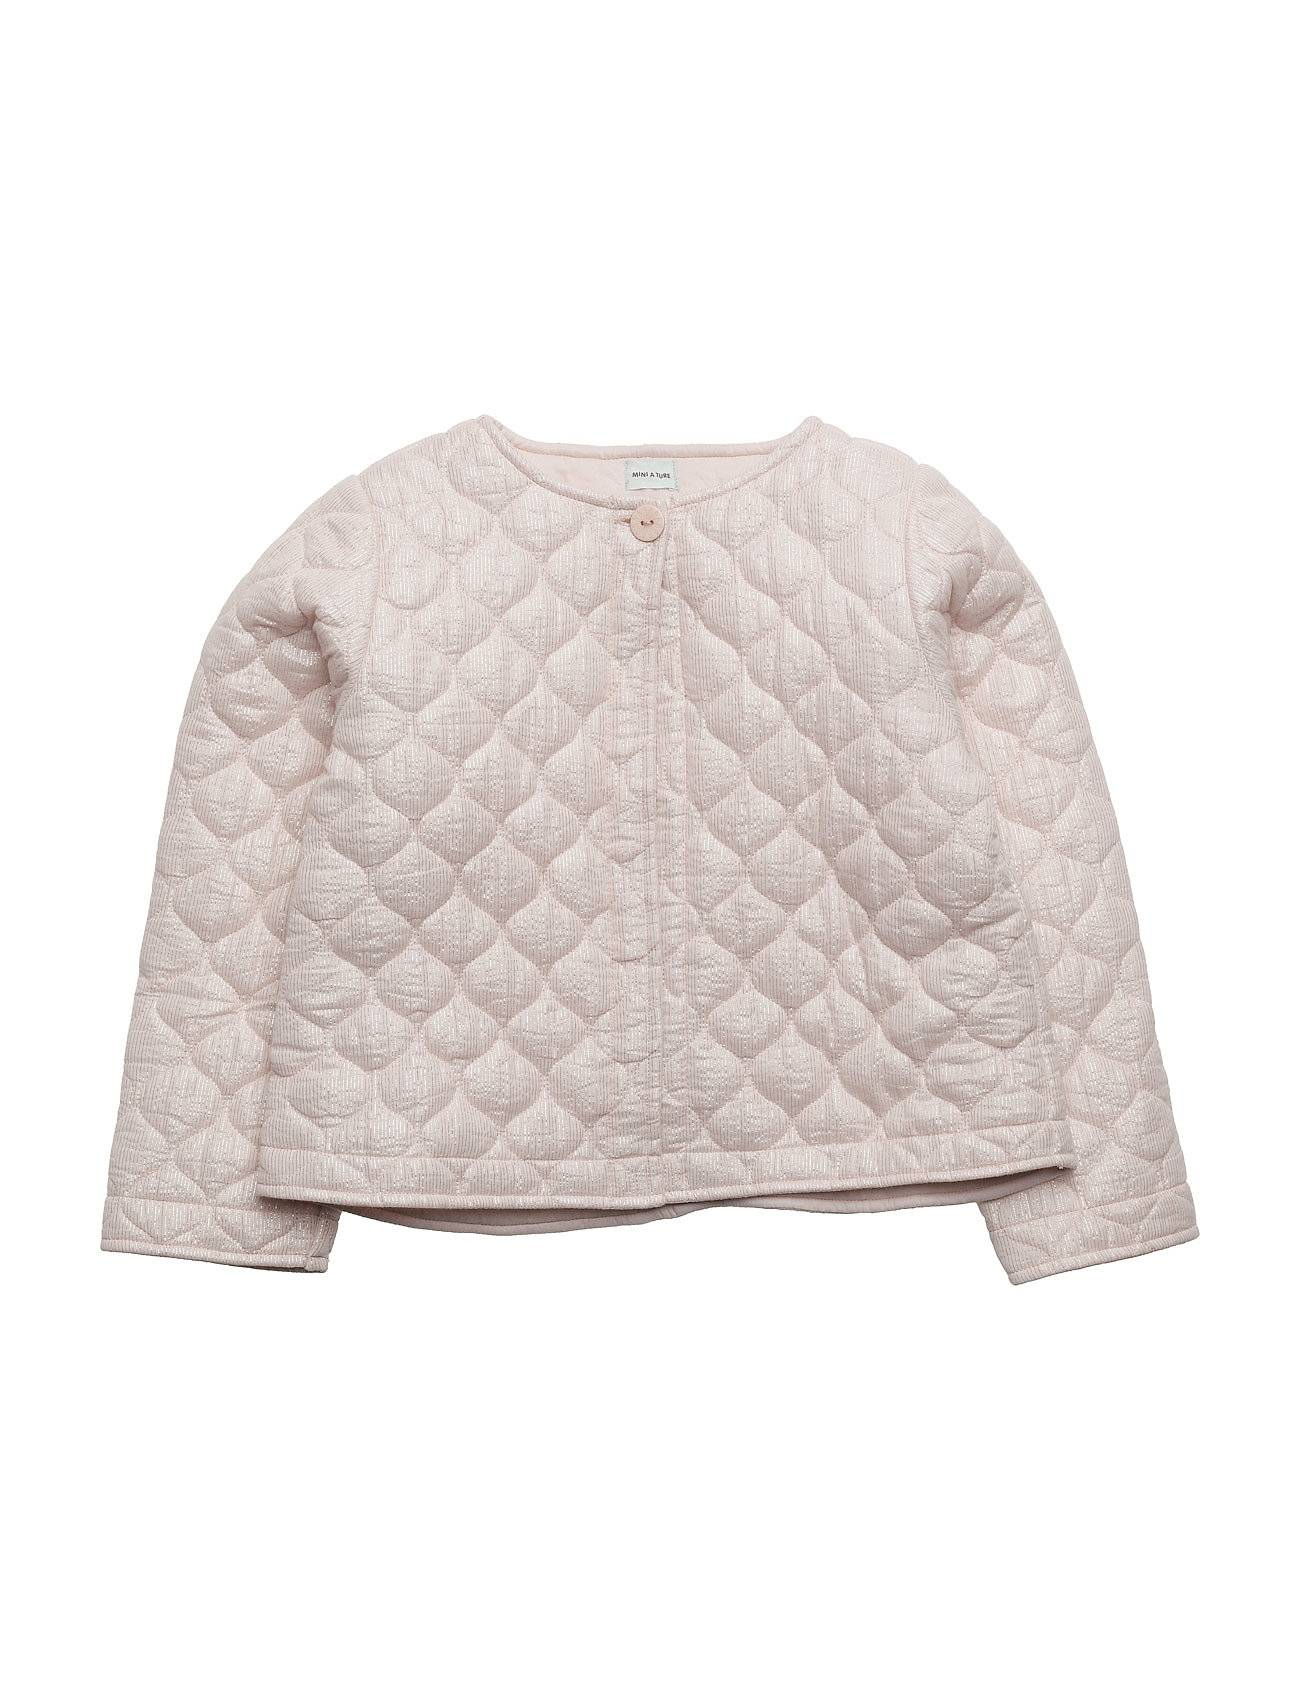 Mini A Ture Annalia, K Jacket